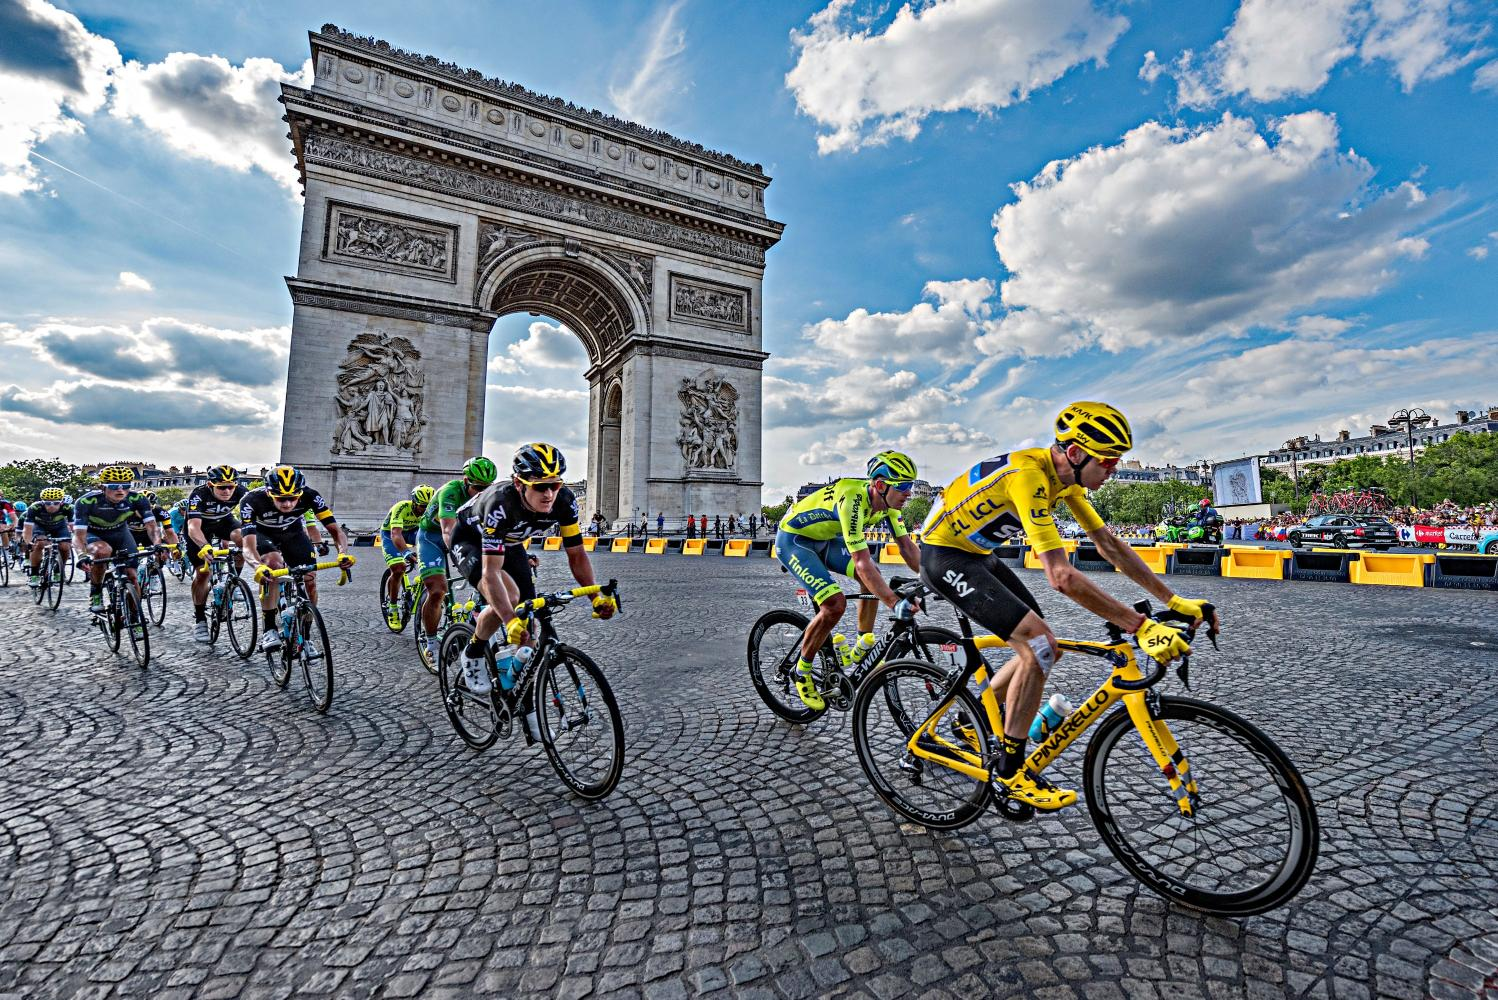 Tour de France 2021: Stage 1, France - PJAMM Cycling - Climb of the Week